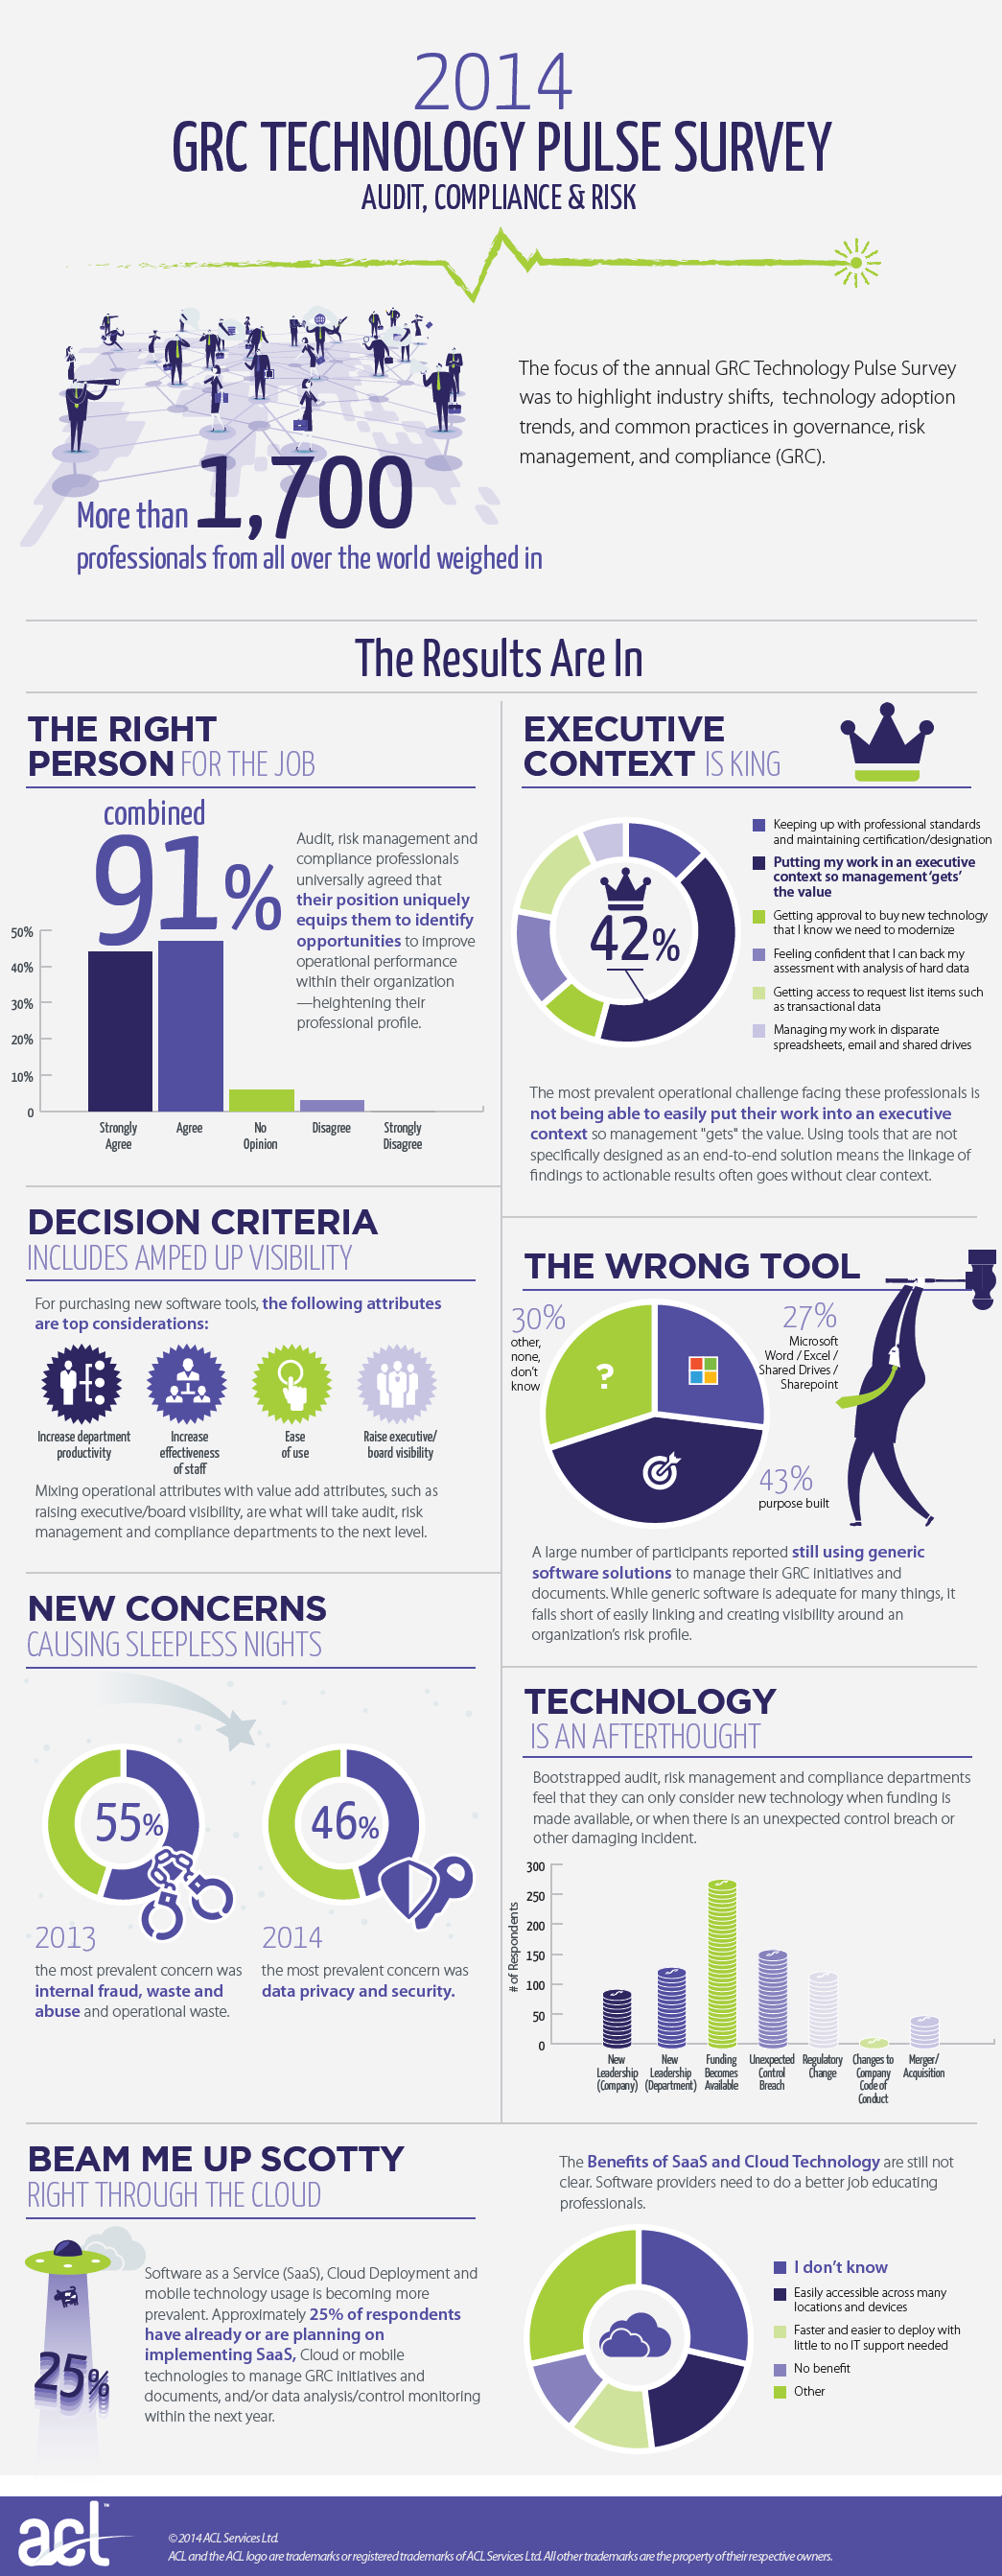 2014_GRC_Technology_Pulse_Survey